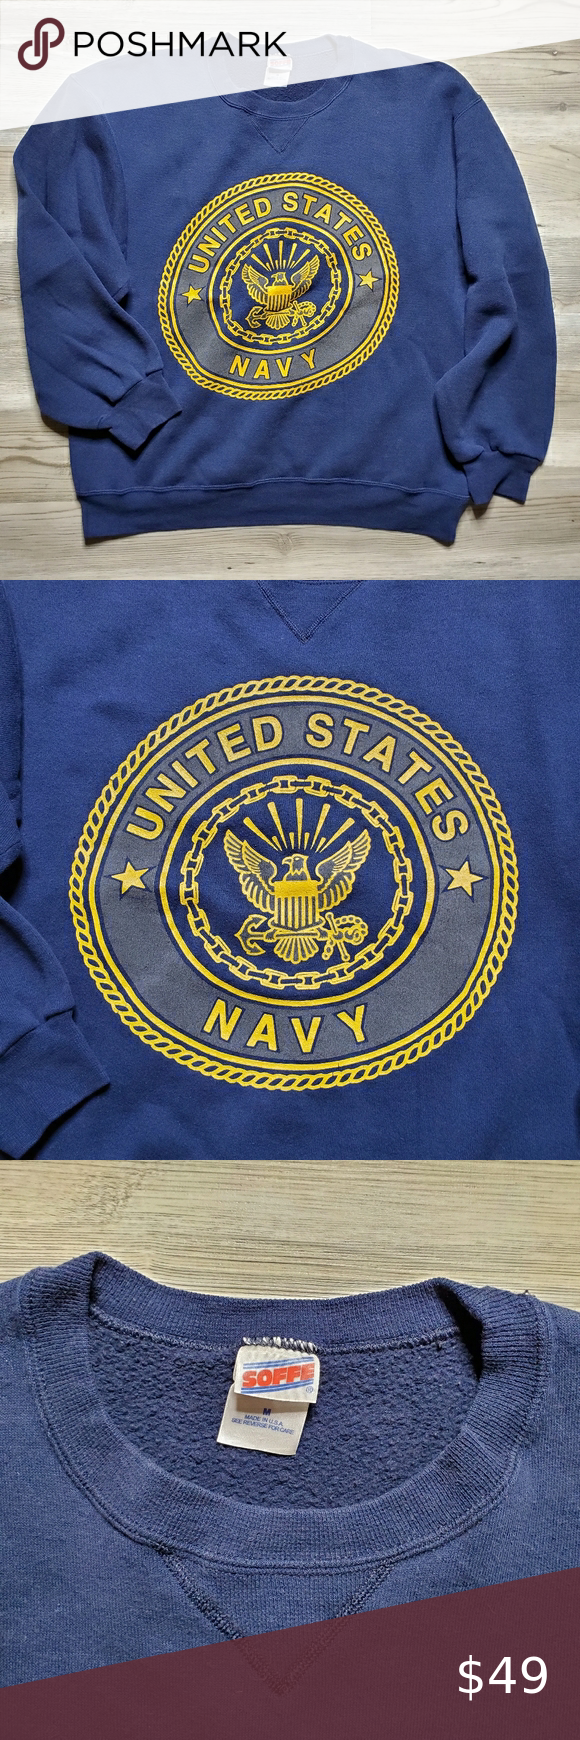 United States Navy Sweater Pullover Mens M Vtg Navy Sweaters Sweater Hoodie Tommy Hilfiger Shirts [ 1740 x 580 Pixel ]